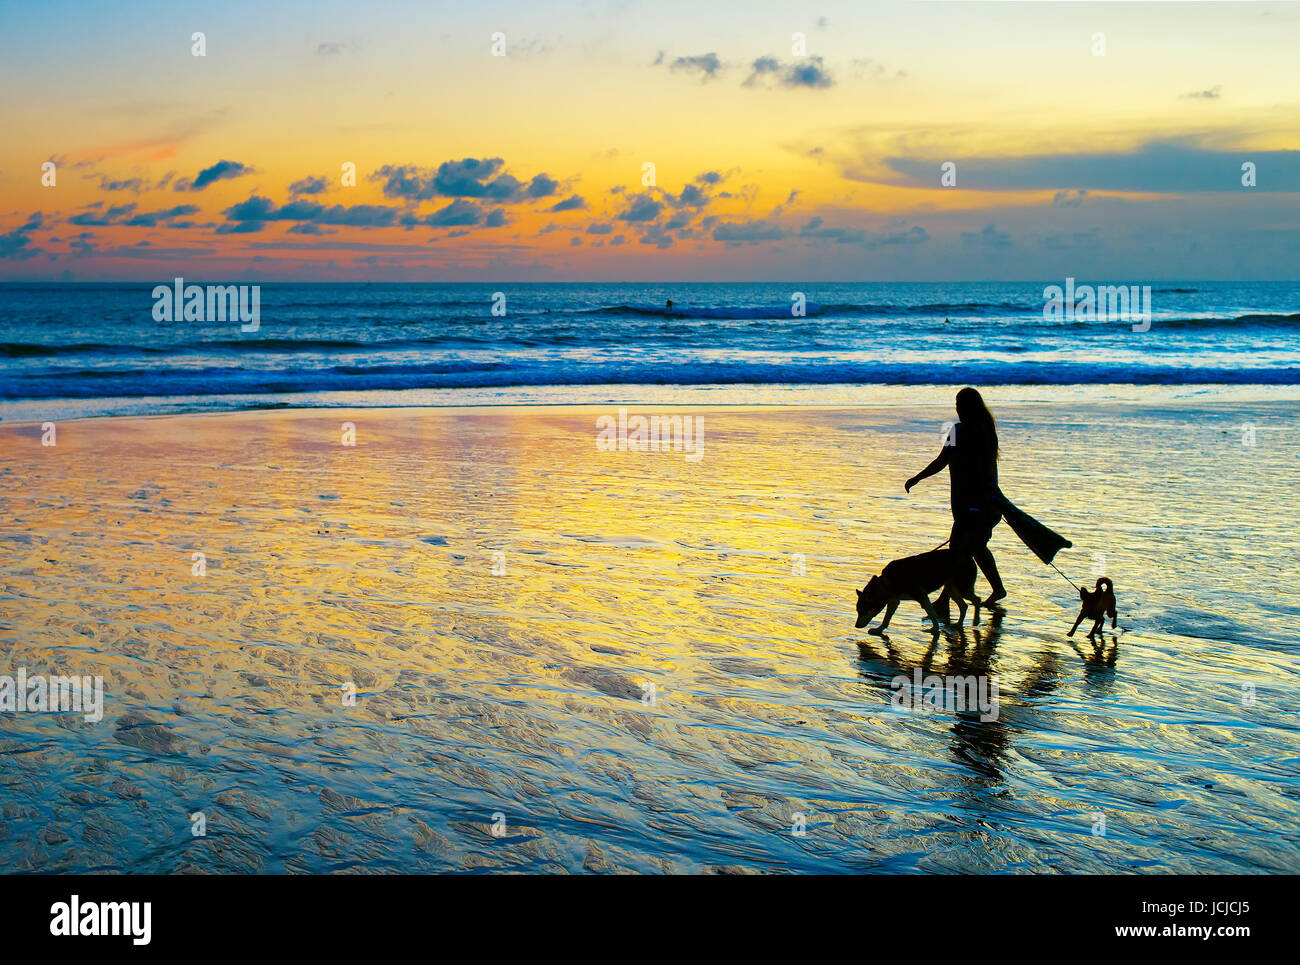 Woman with two dogs walking on a beach at sunset. Bali island - Stock Image